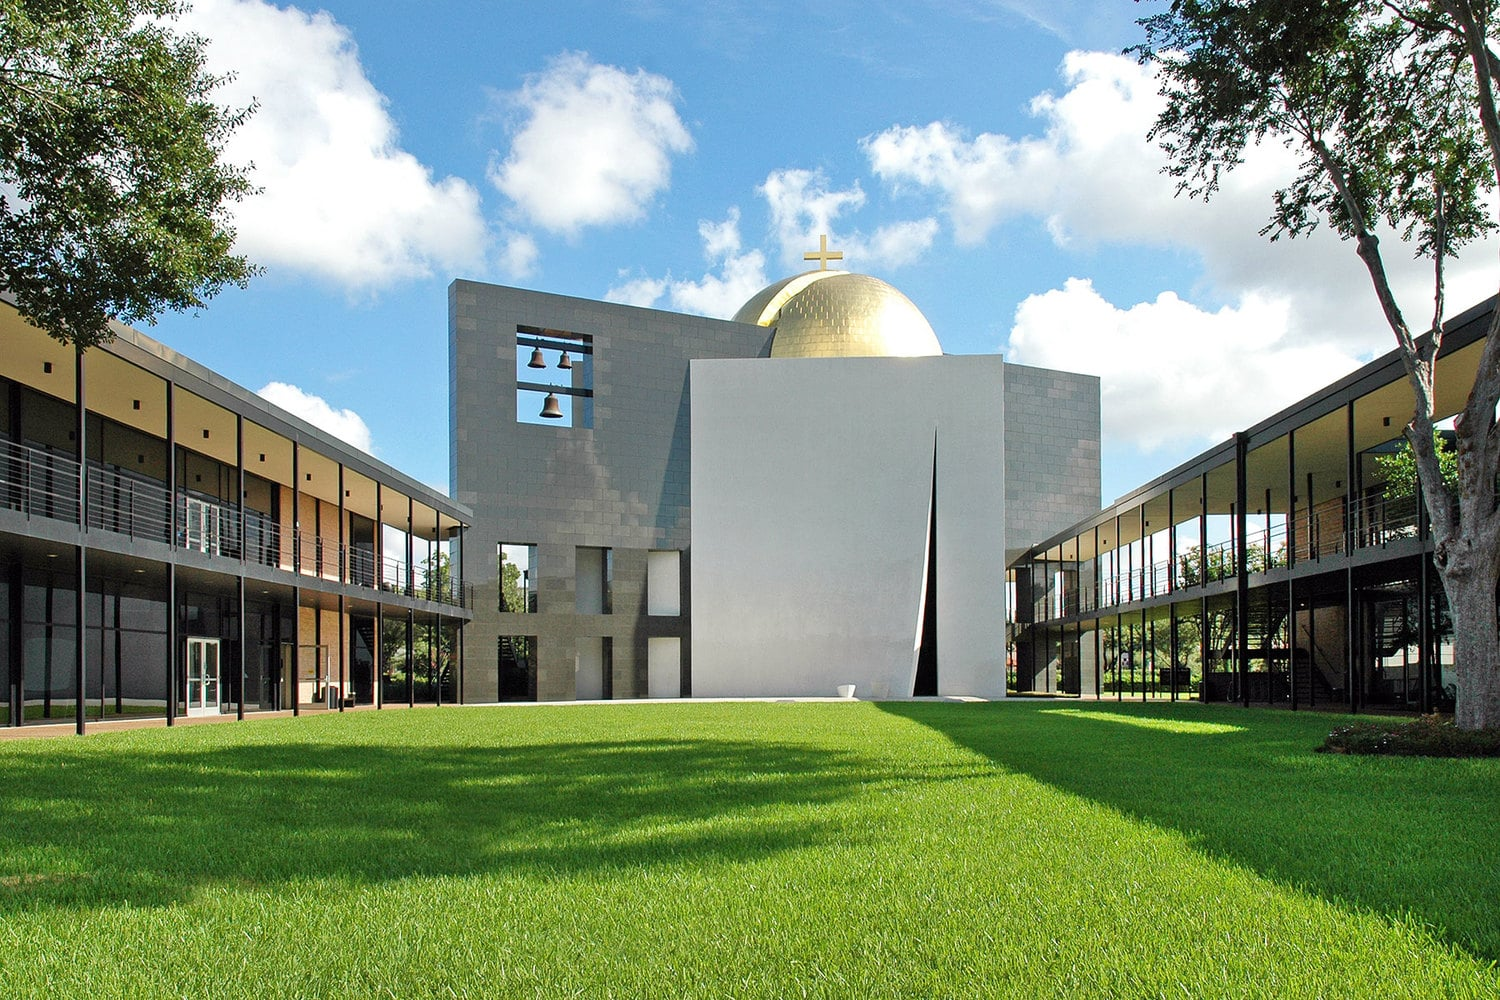 فیلیپ جانسون Chapel of St. Basil at the University of St. Thomas in Houston, Texas